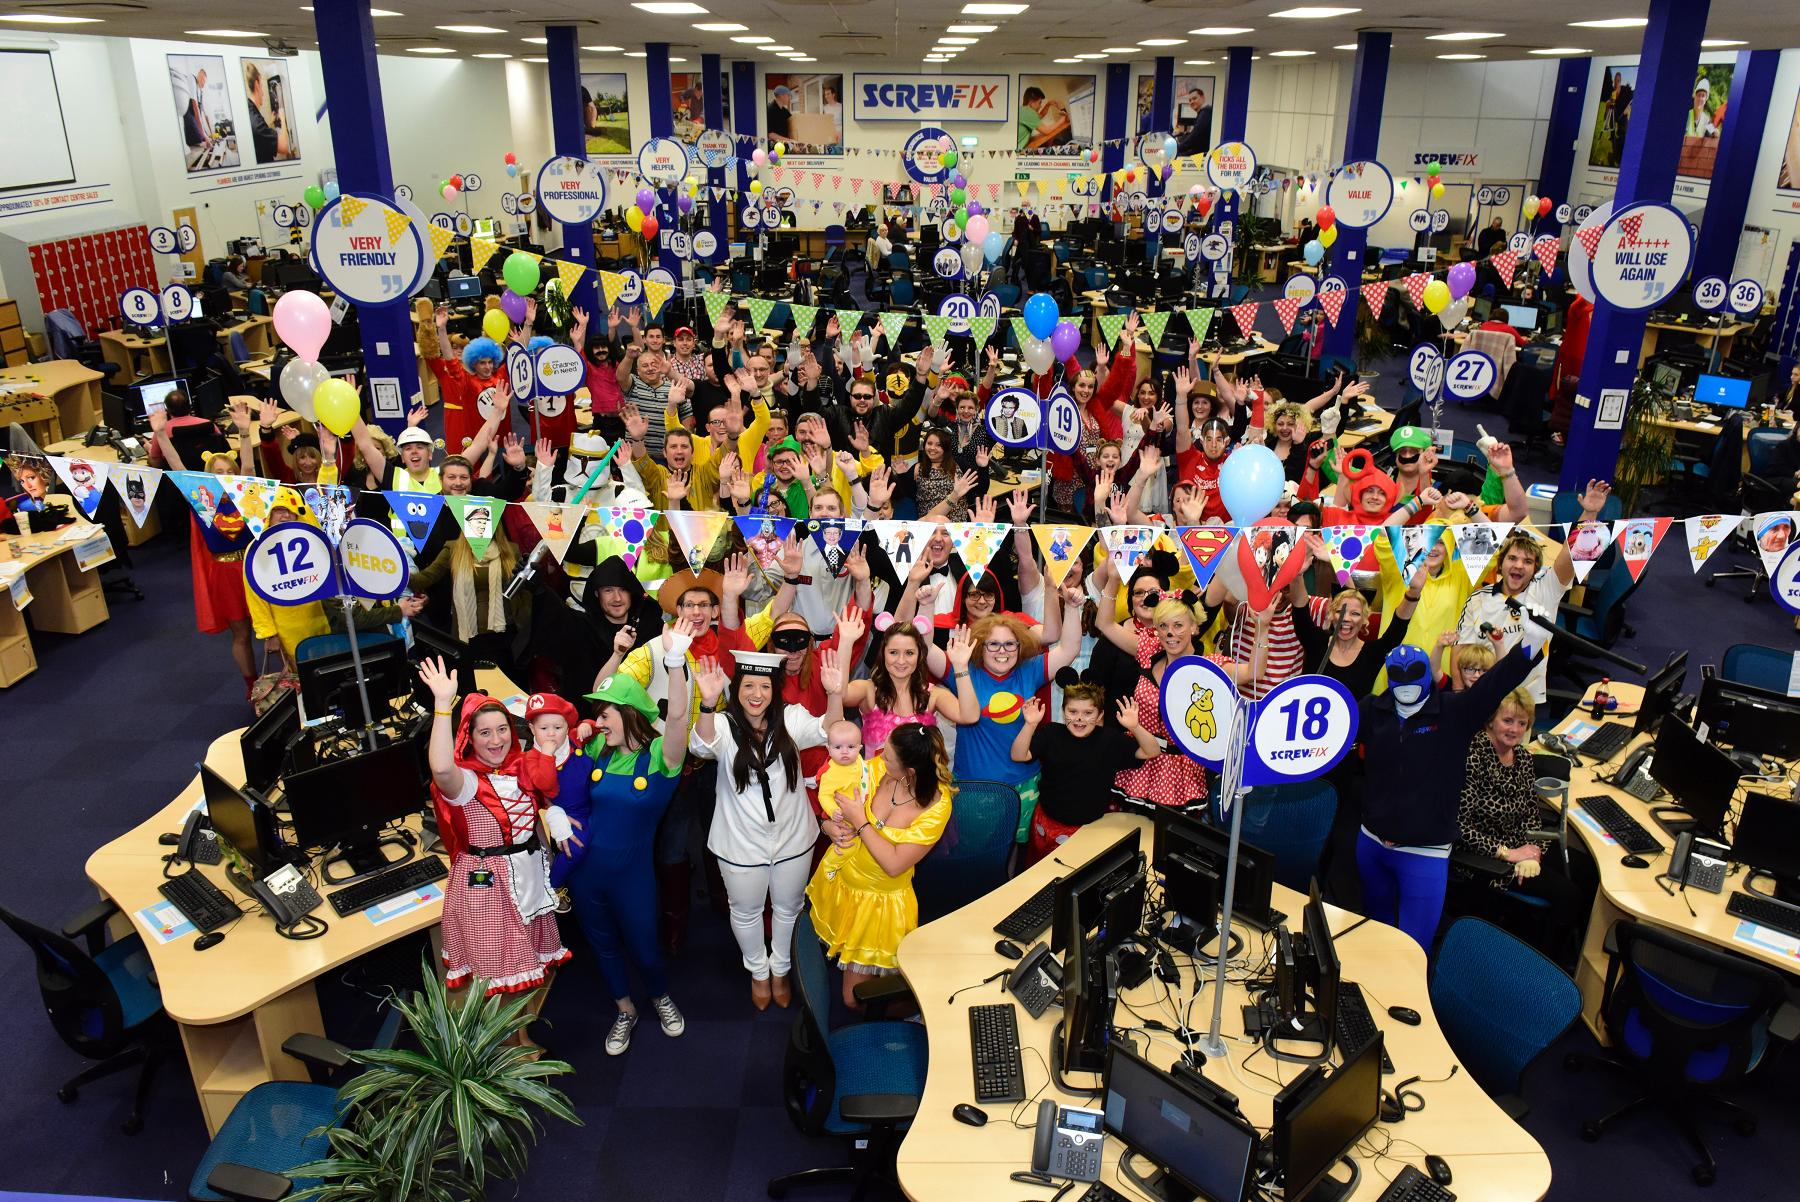 Screwfix took thousands of calls for BBC Children in Need on Friday 13 November